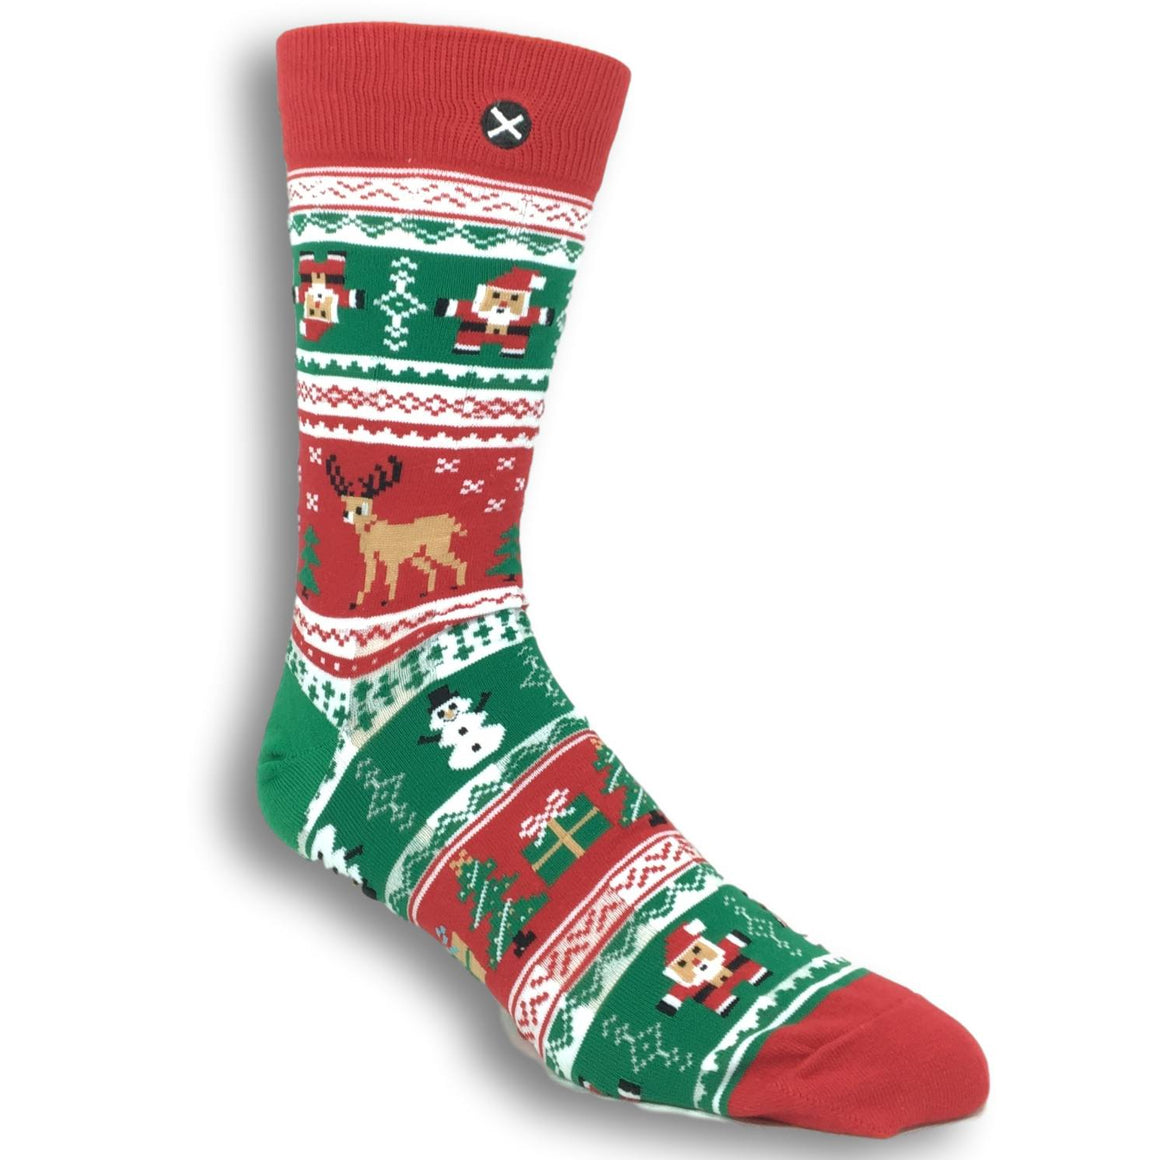 Ugly Christmas Sweater Socks by Odd Sox - The Sock Spot